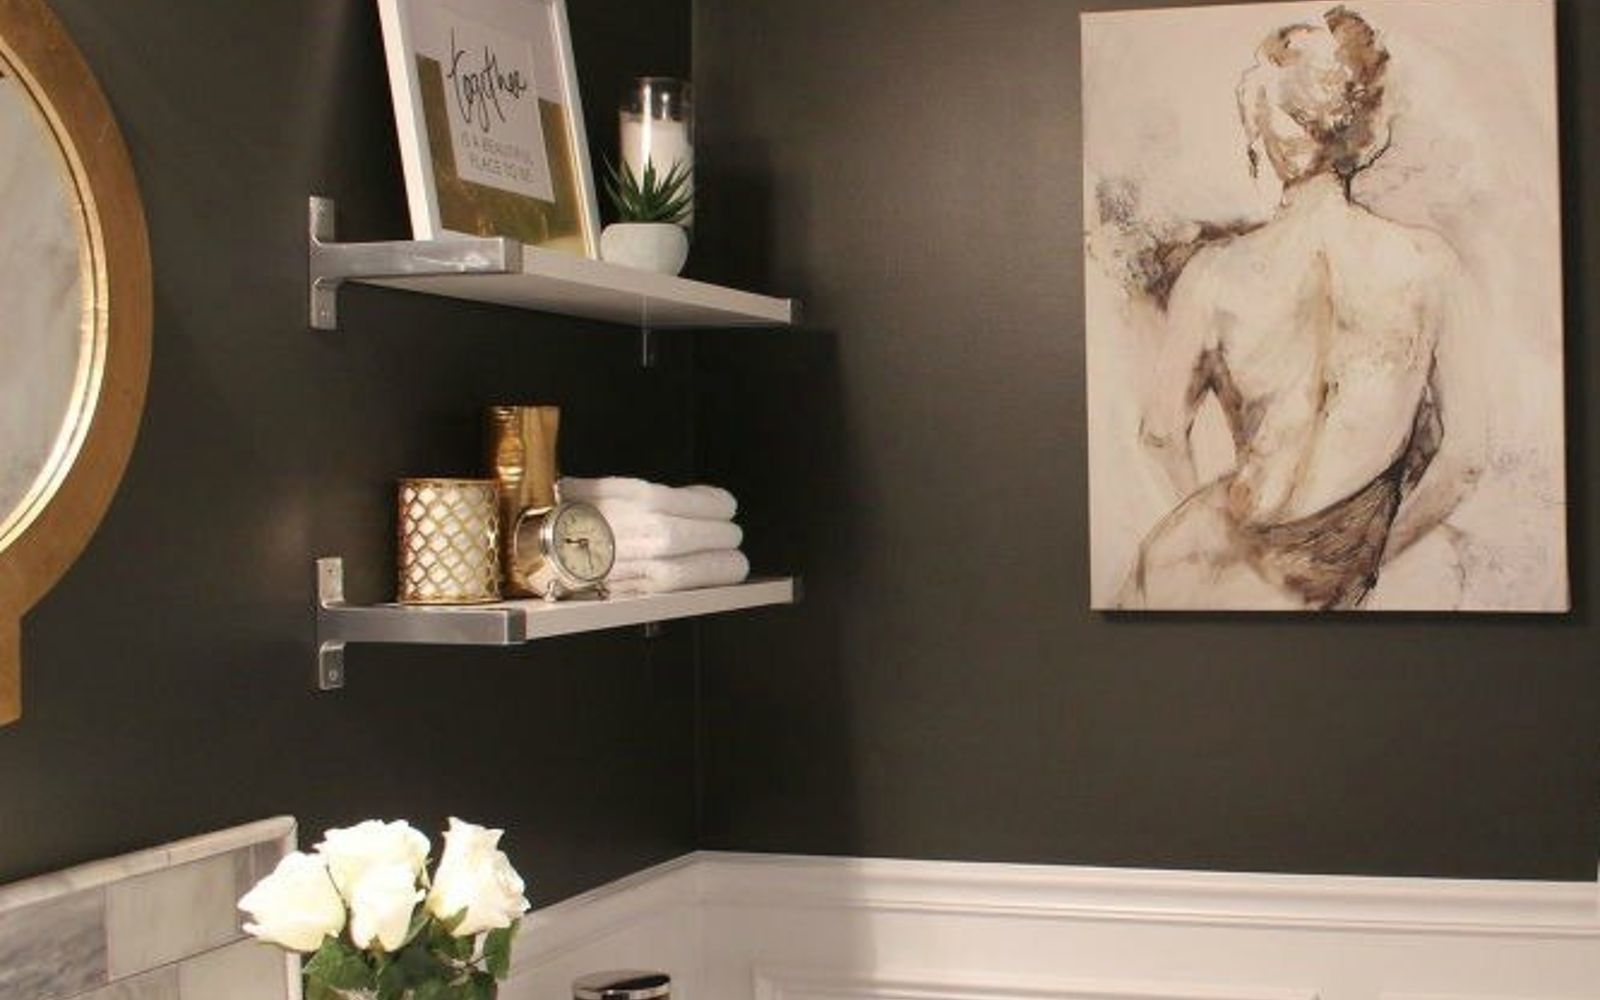 s 10 awesome paint colors to try in 2016, bedroom ideas, home decor, paint colors, Urbane Bronze Sherwin Williams